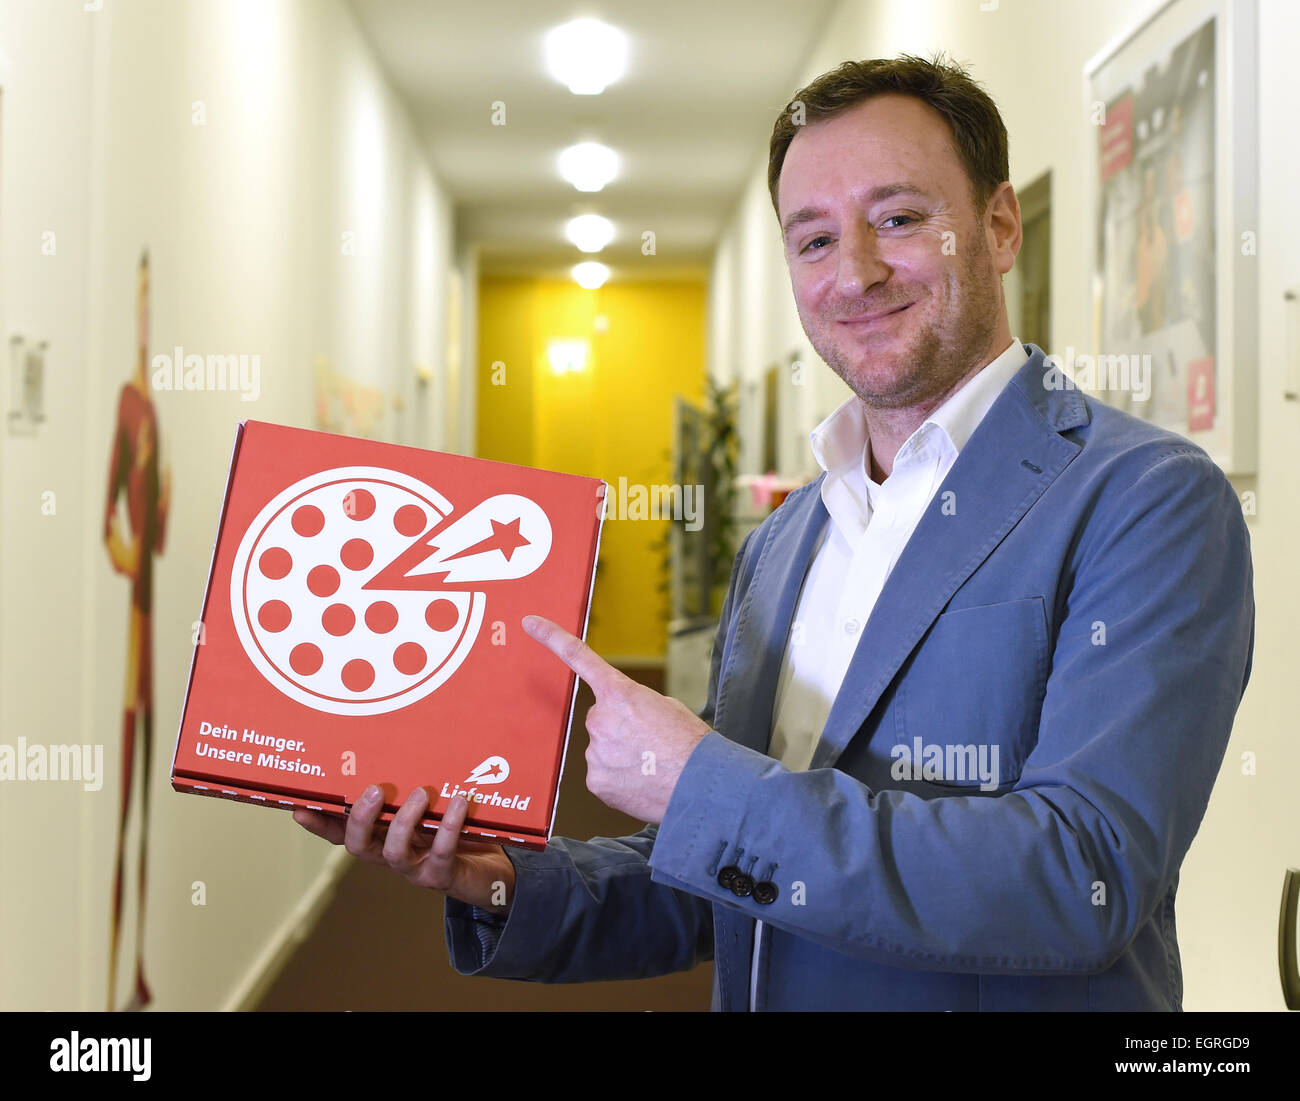 Berlin, Germany. 24th Feb, 2015. The CEO of online order and delivery platform 'Lieferheld', David Rodriguez, - Stock Image